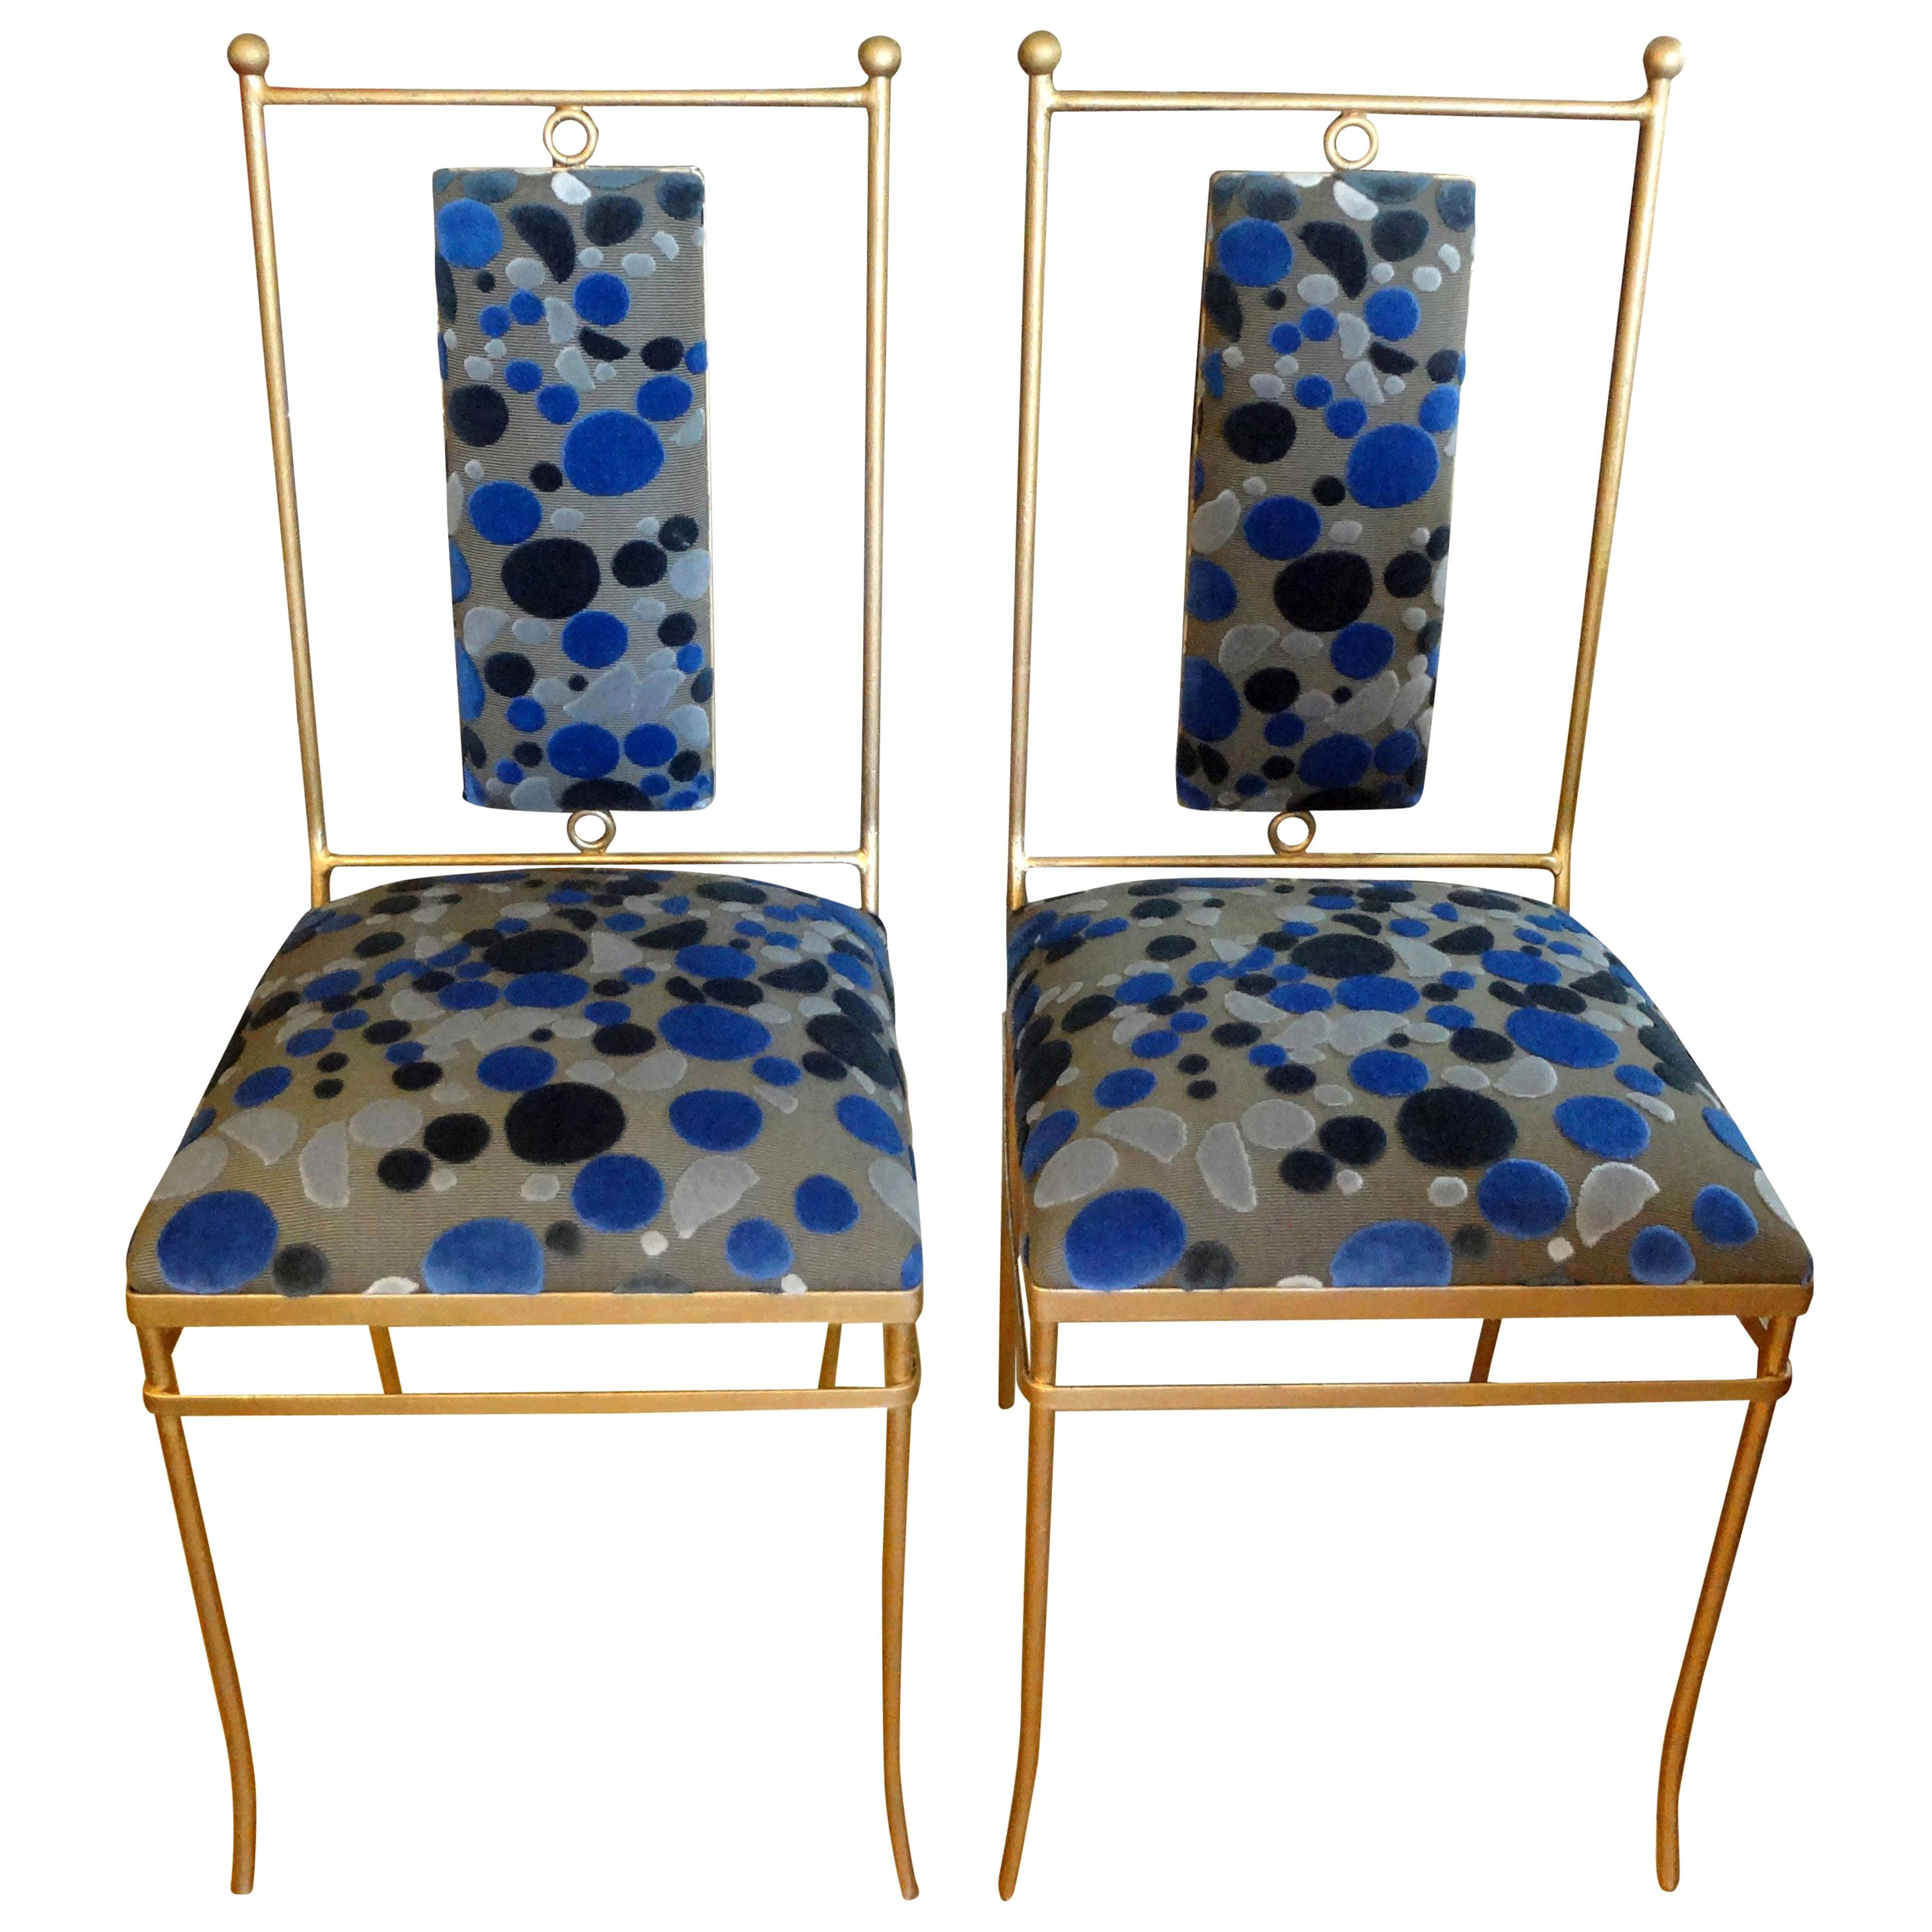 Pair of Italian Neoclassical Style Gilt Iron Chairs